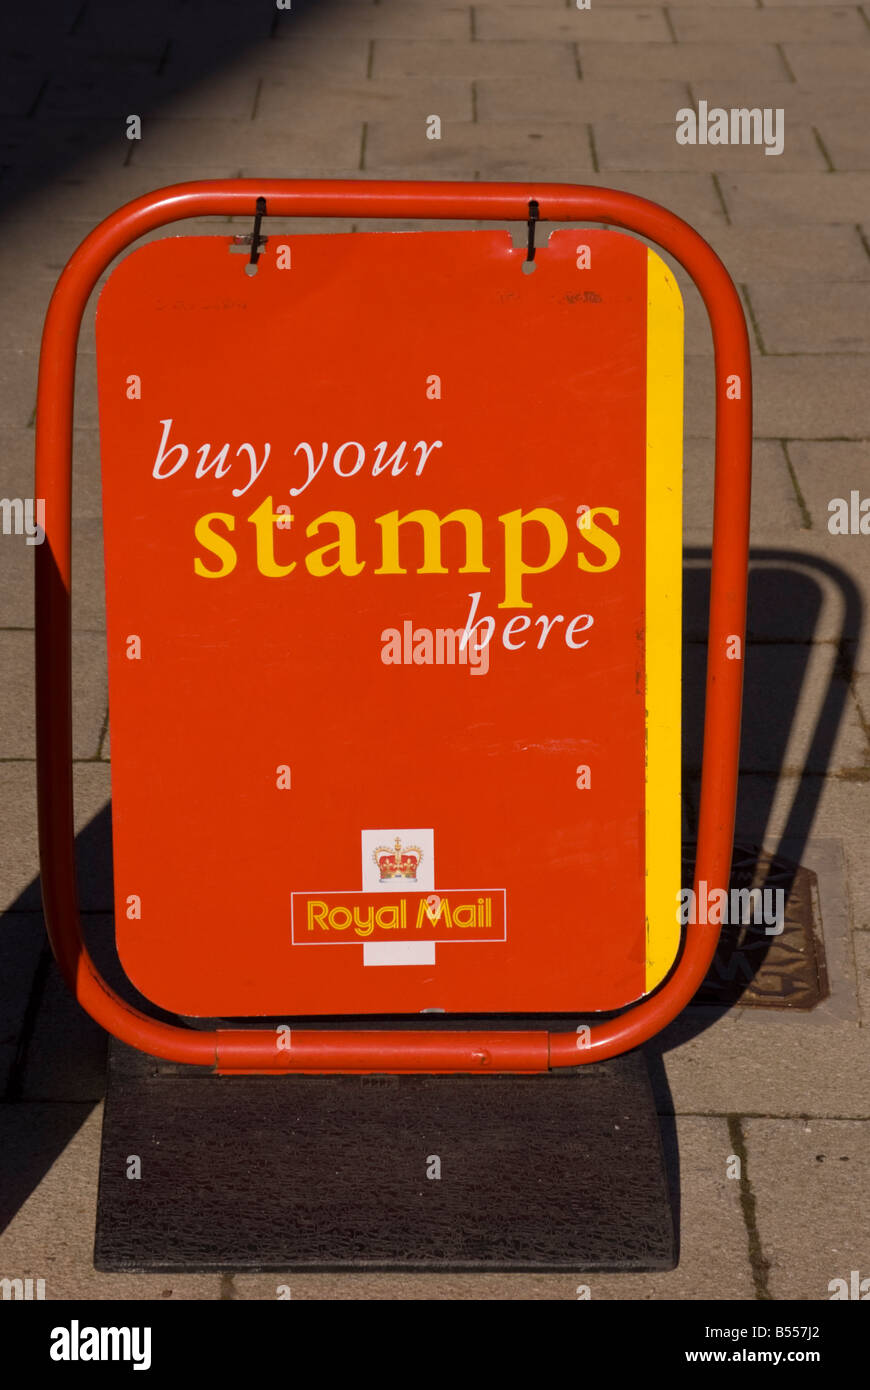 Buy Stamps Uk Stock Photos Buy Stamps Uk Stock Images Alamy